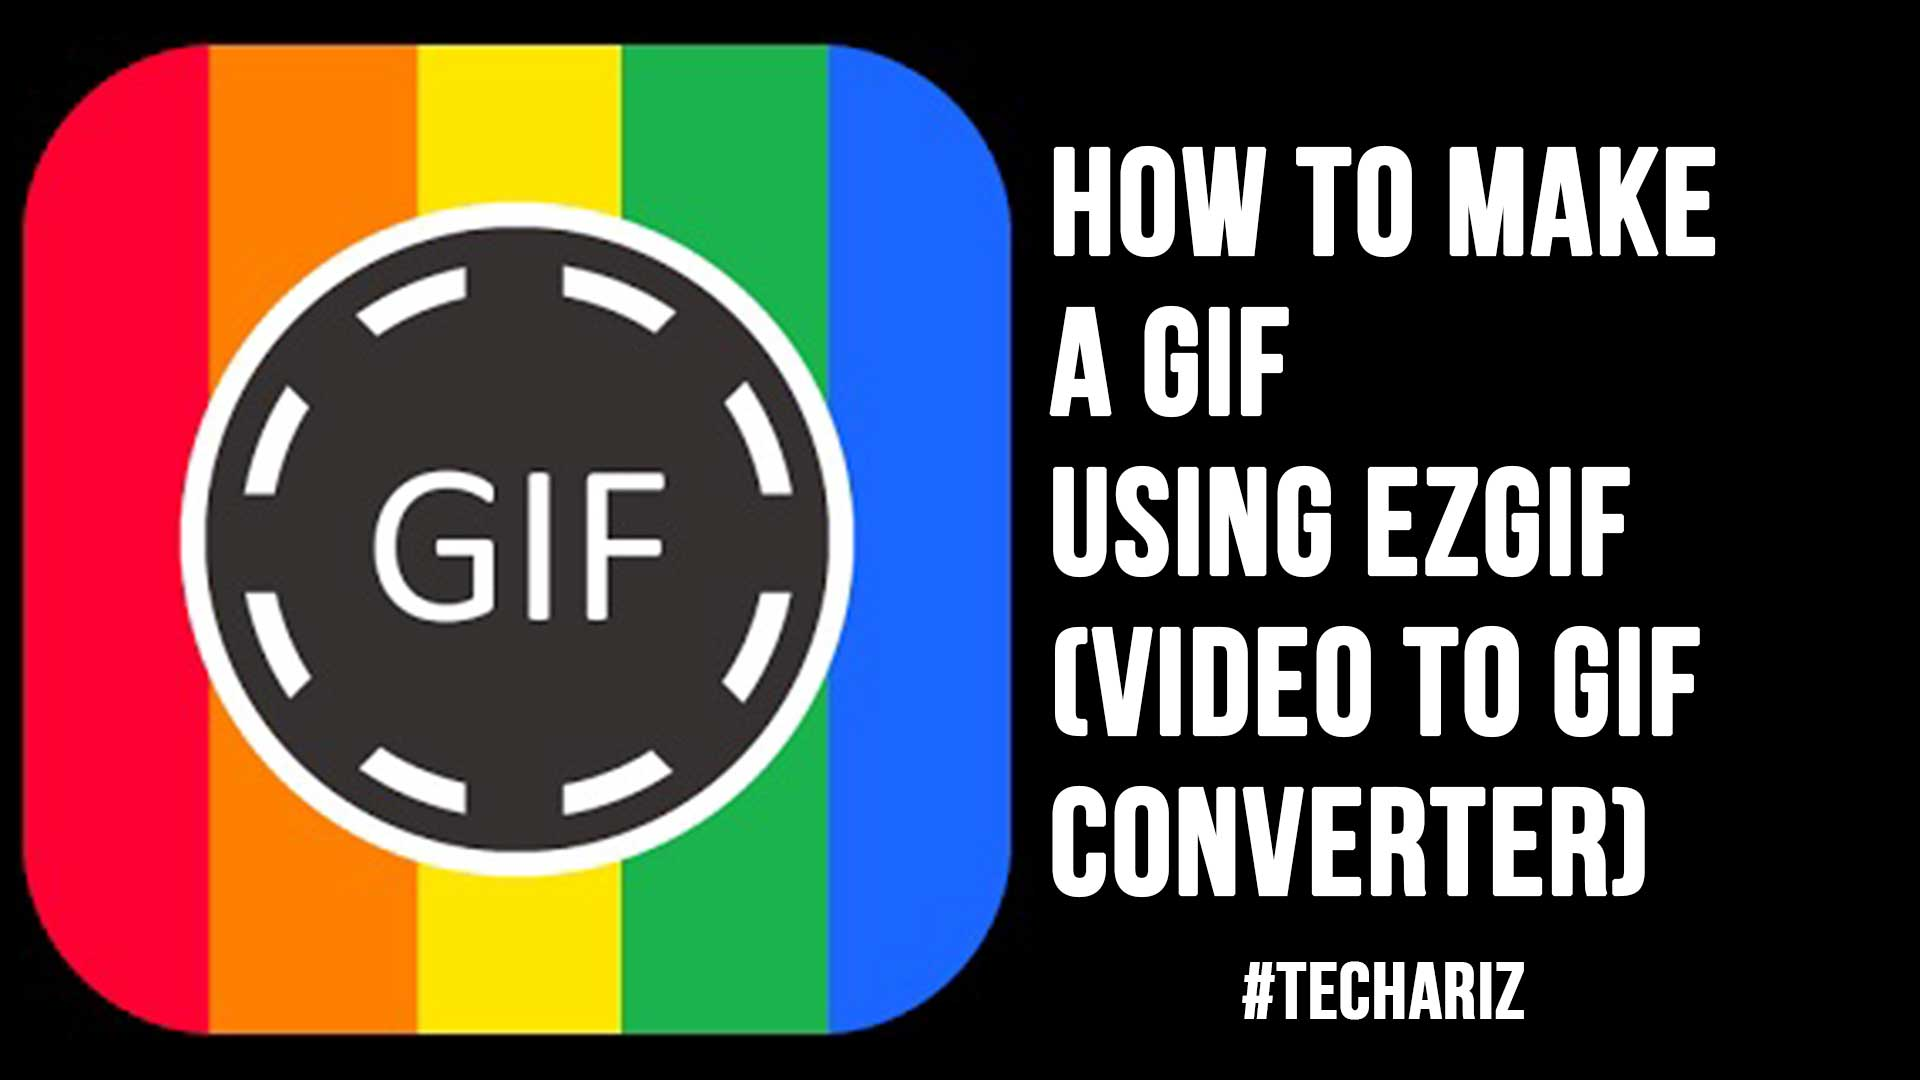 How to Make a GIF using EZGIF Video to GIF Converter